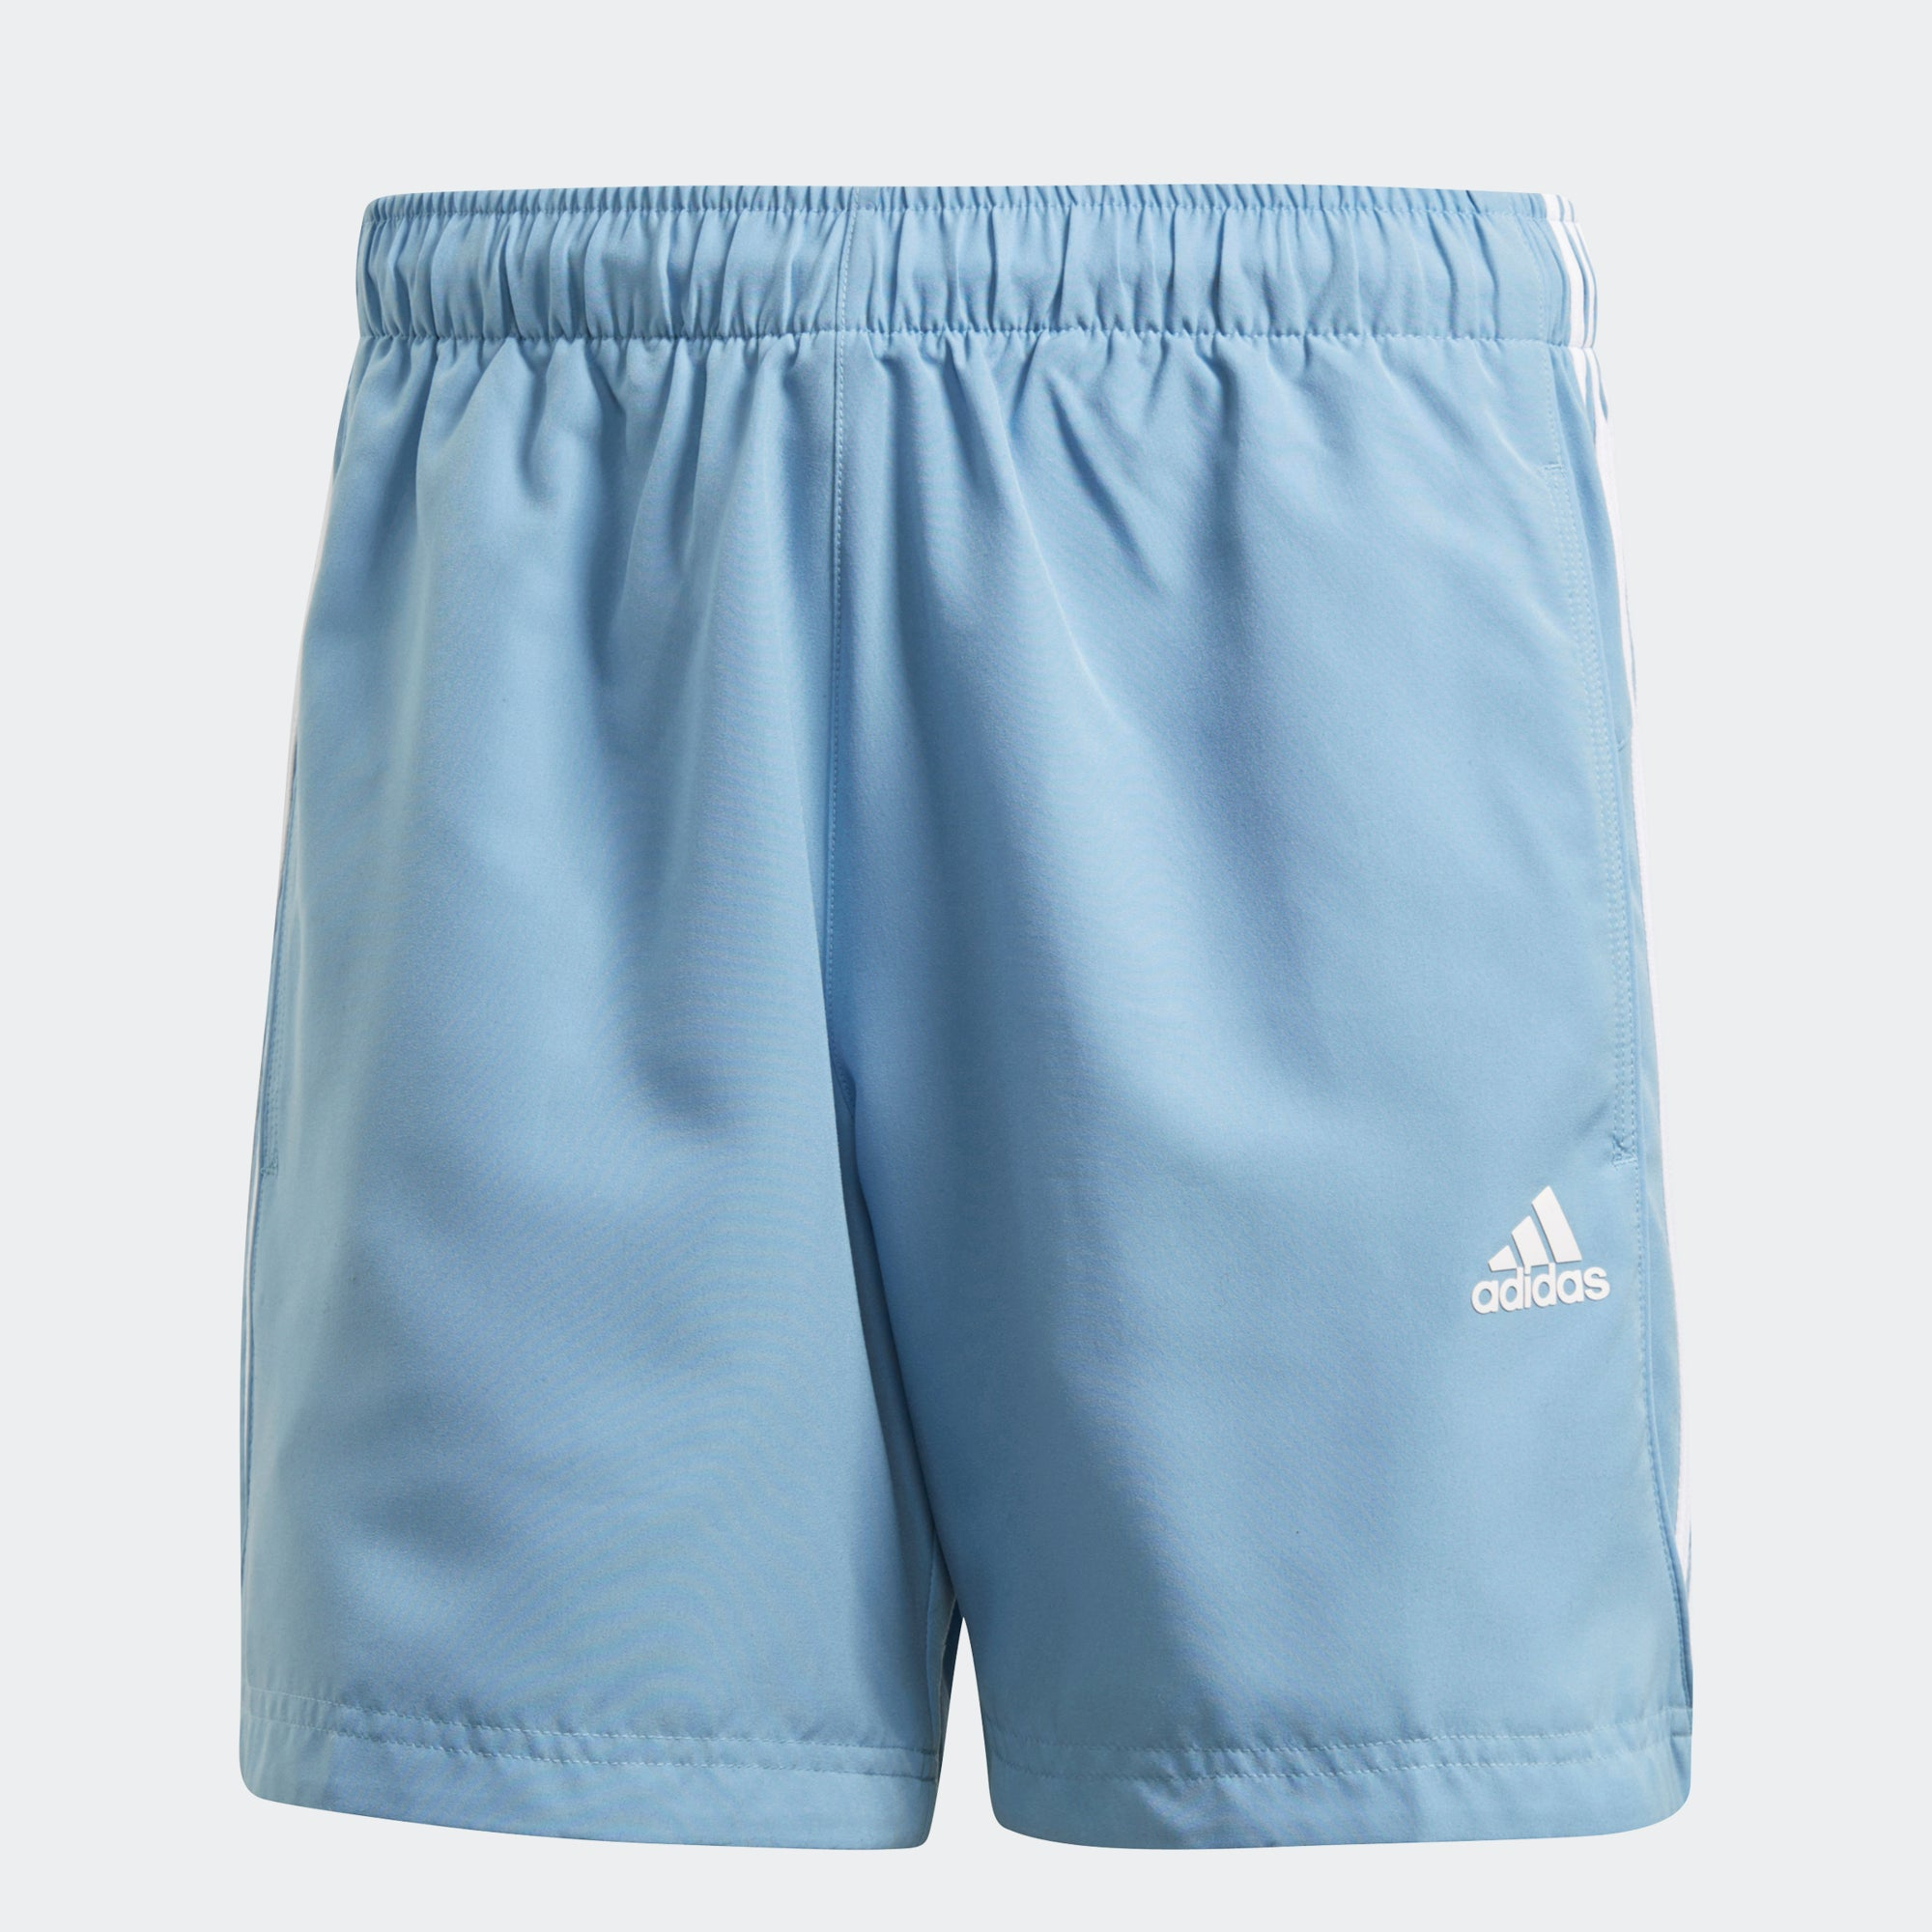 Buy adidas Men Sport Essentials 3 Stripes Chelsea Shorts, Blue Online in Singapore | Royal Sporting House